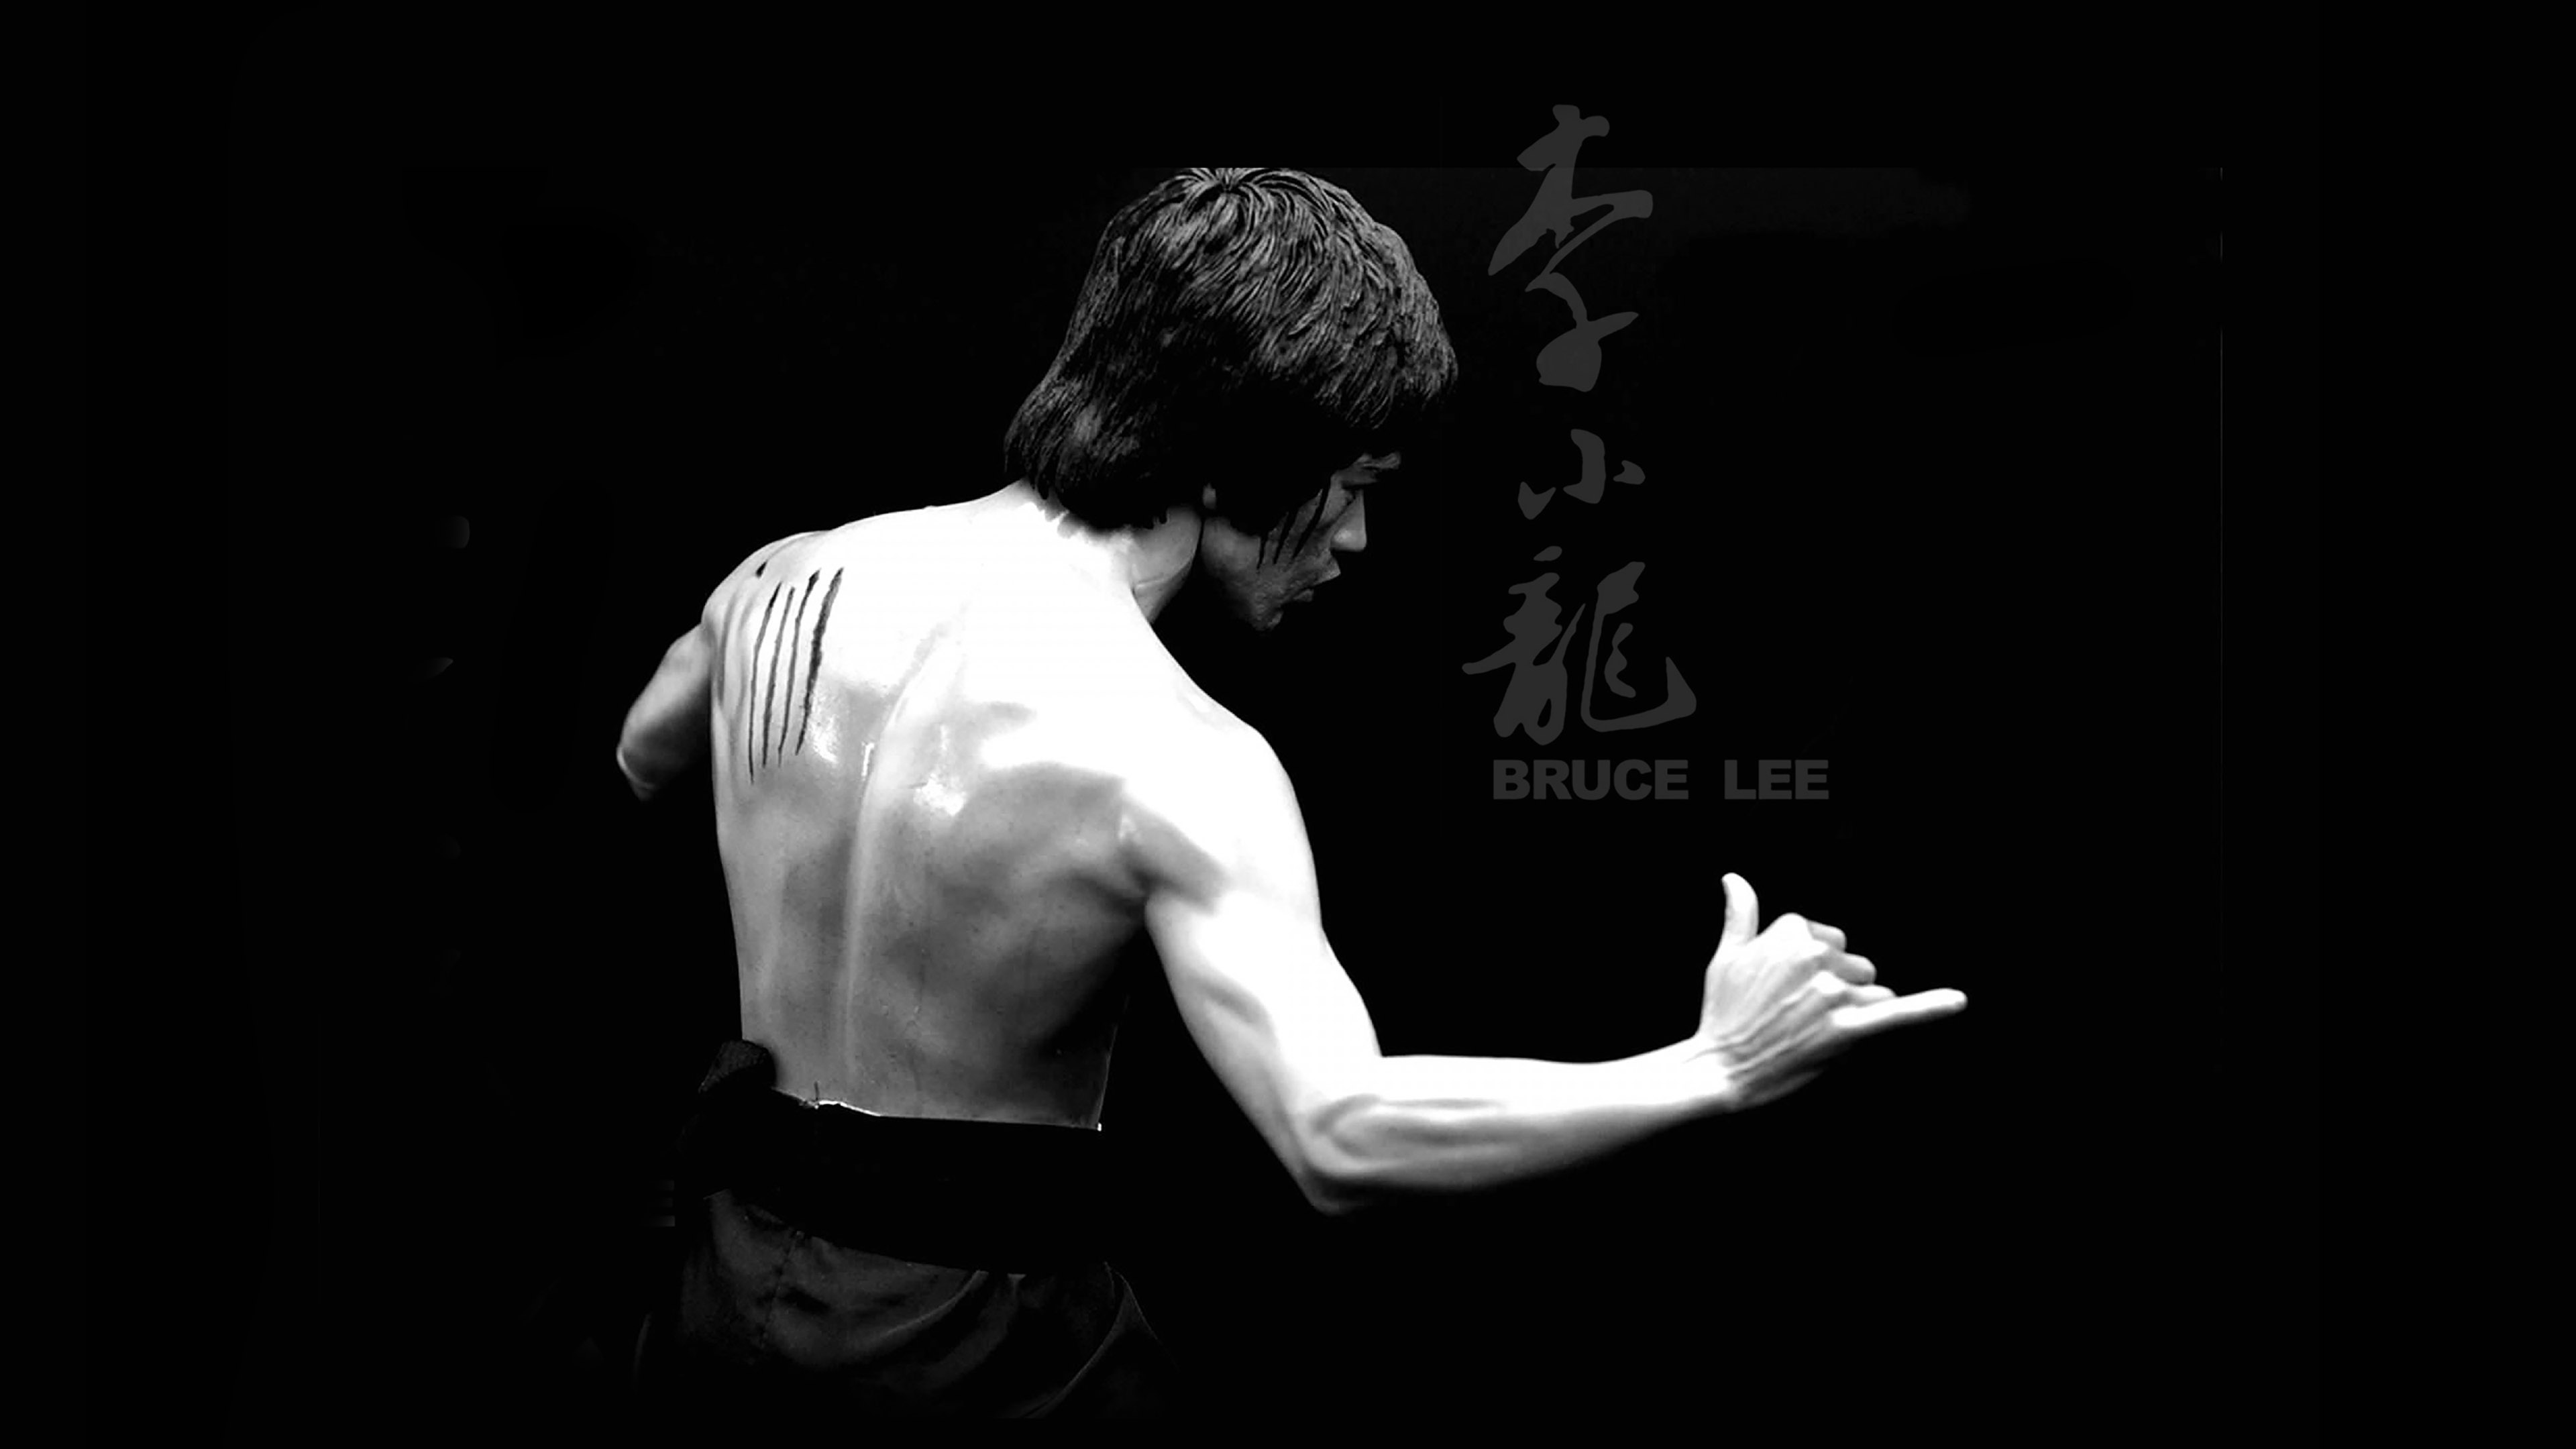 hd64-bruce-lee-sports-actor-celebrity-dark - Papers.co